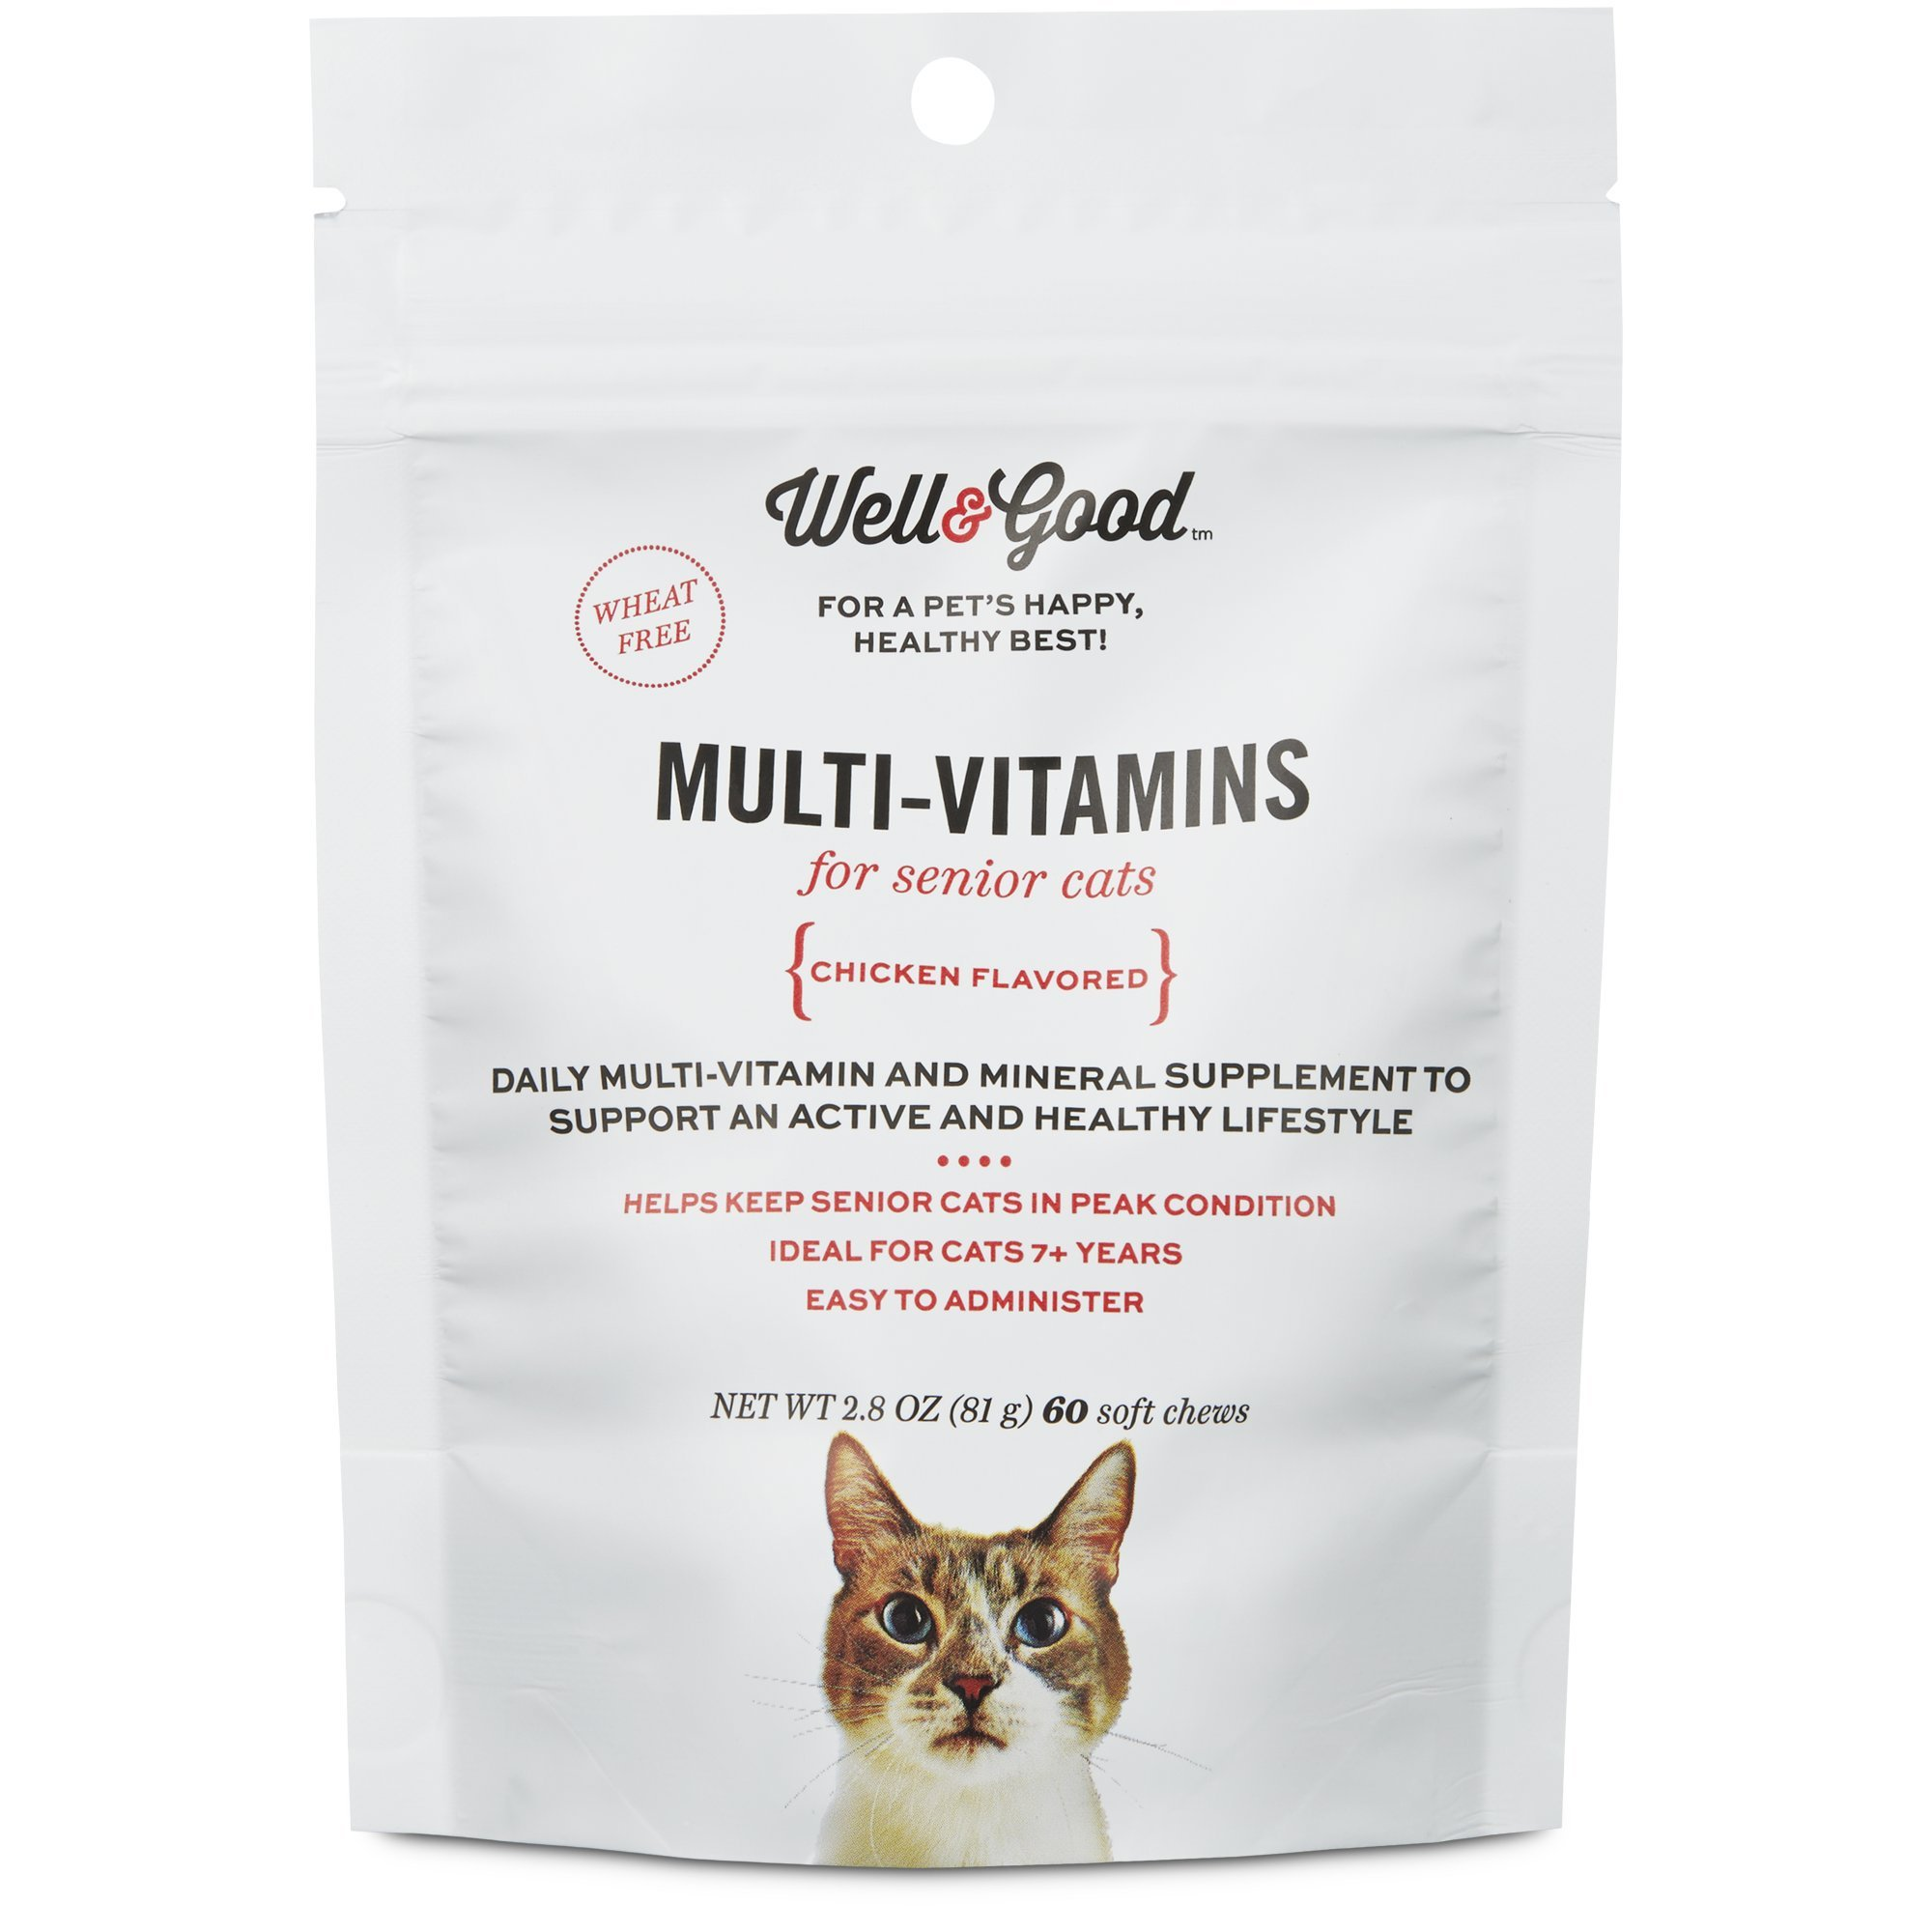 Well & Good Multi Vitamin for Senior Cats, 60 ct by Well & Good